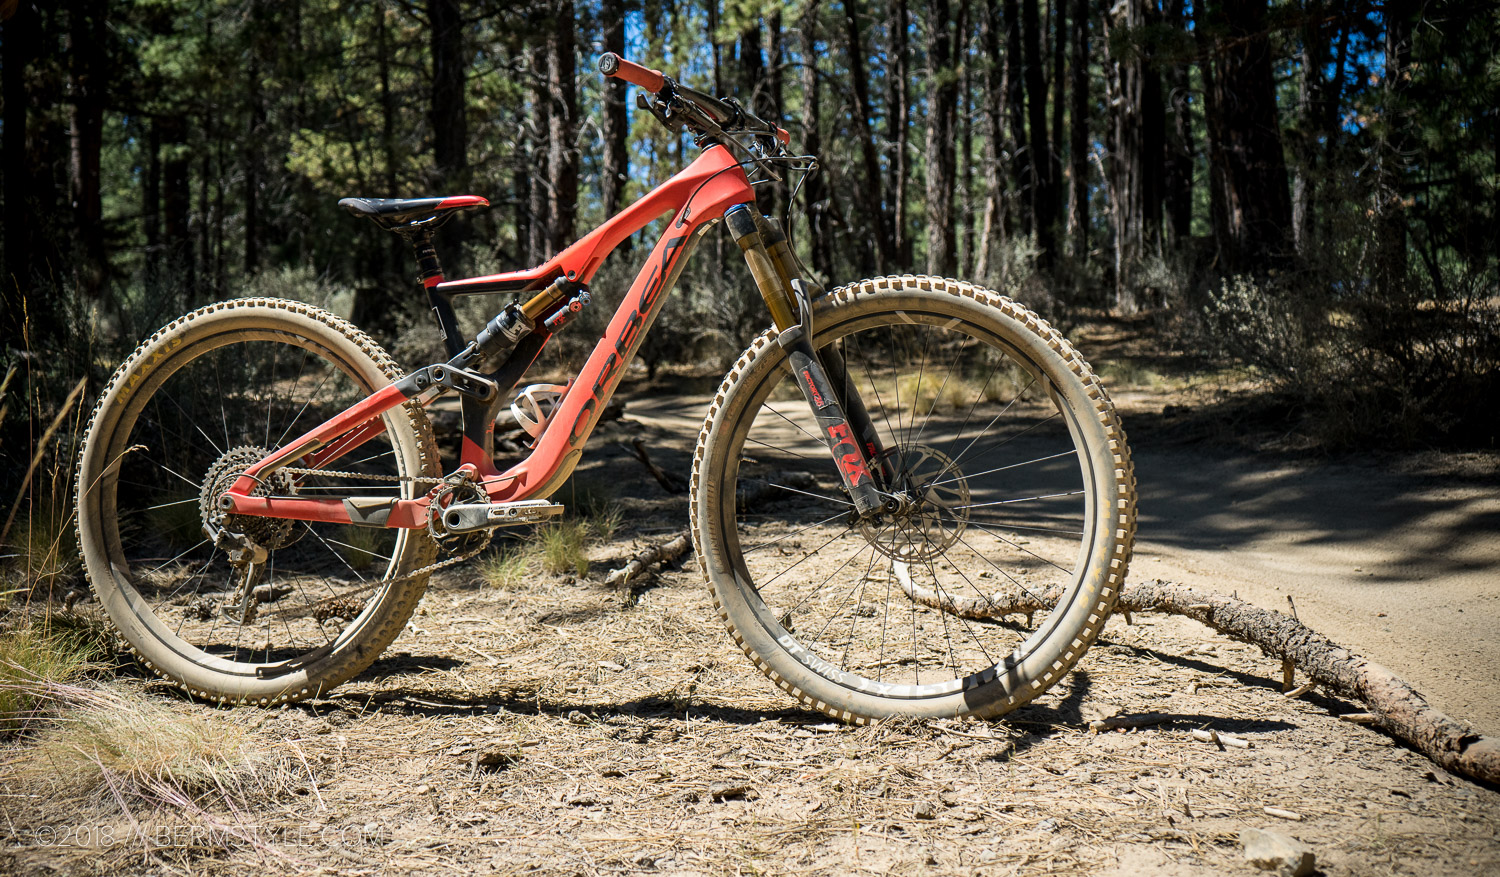 2d67f2feb79 The Orbea Rallon has been on my short list of 29″ trail smashing enduro  rigs for some time. Blending downhill prowess with more than acceptable  climbing ...